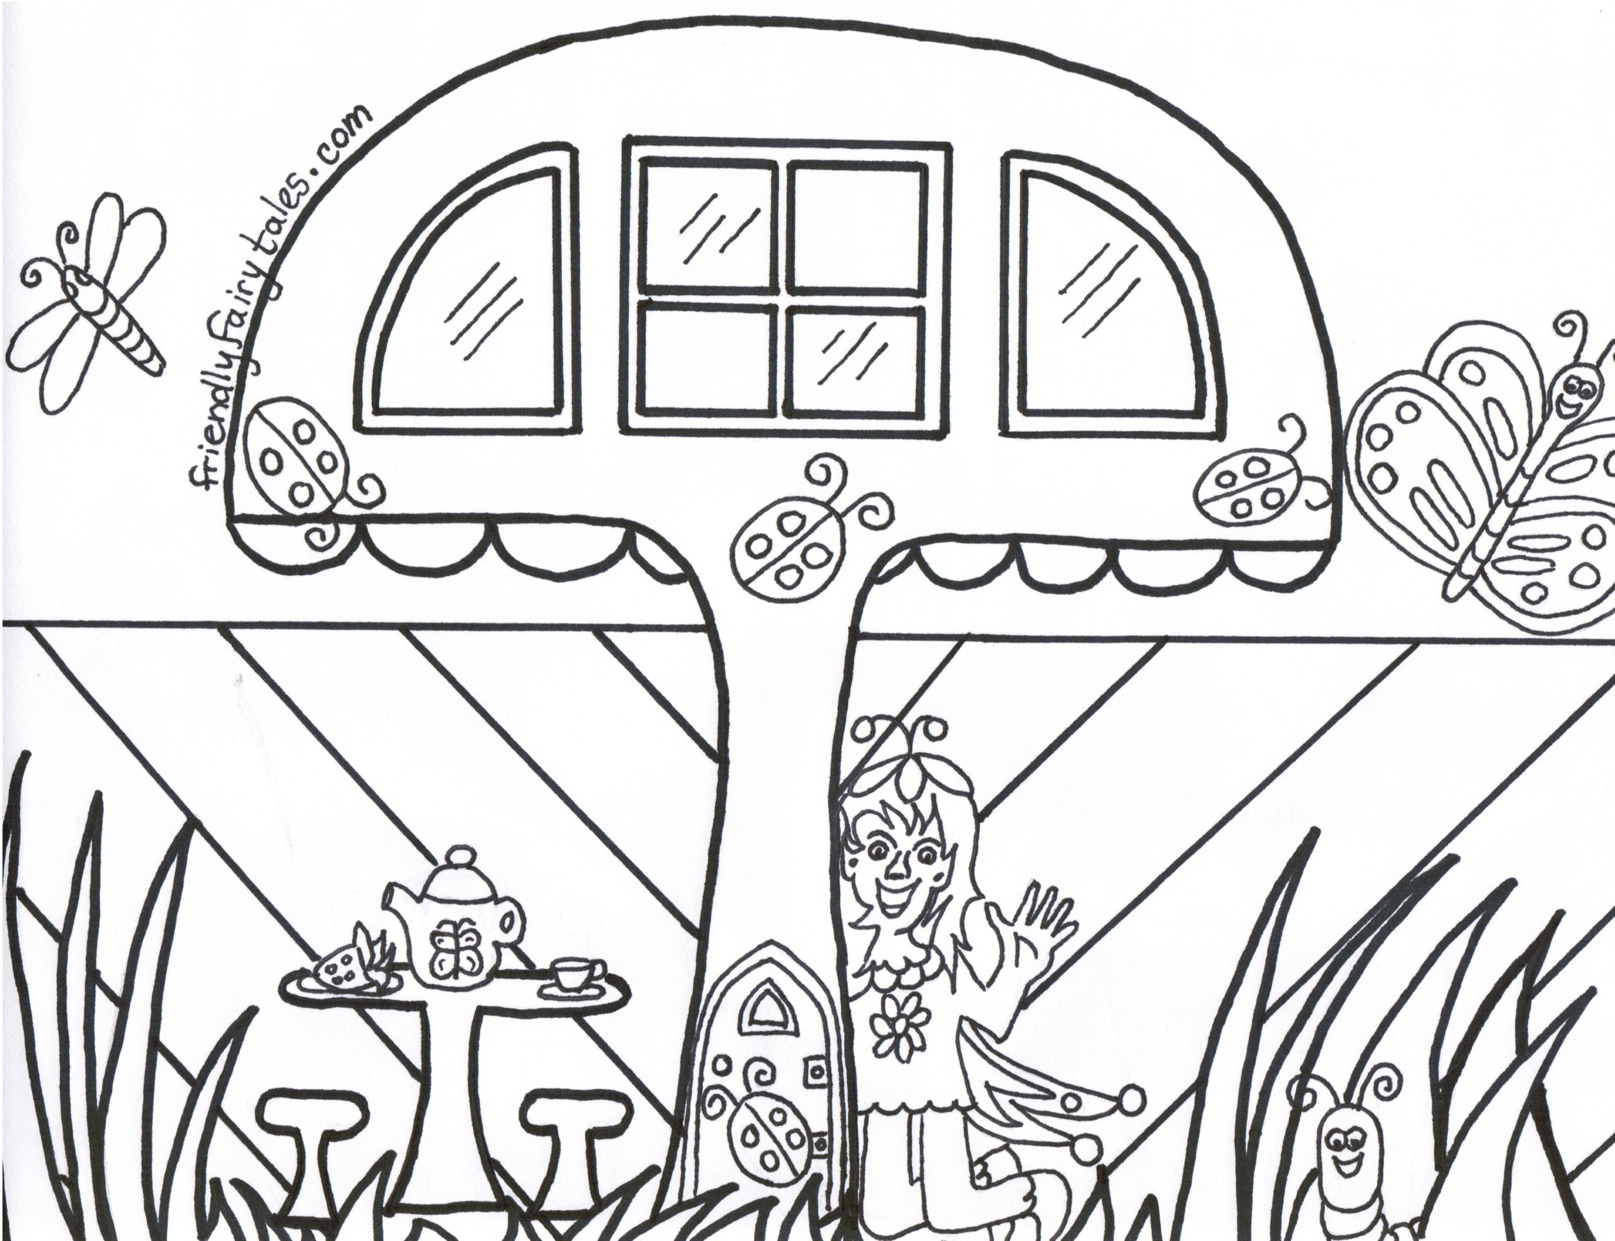 works of mercy coloring pages - photo#22